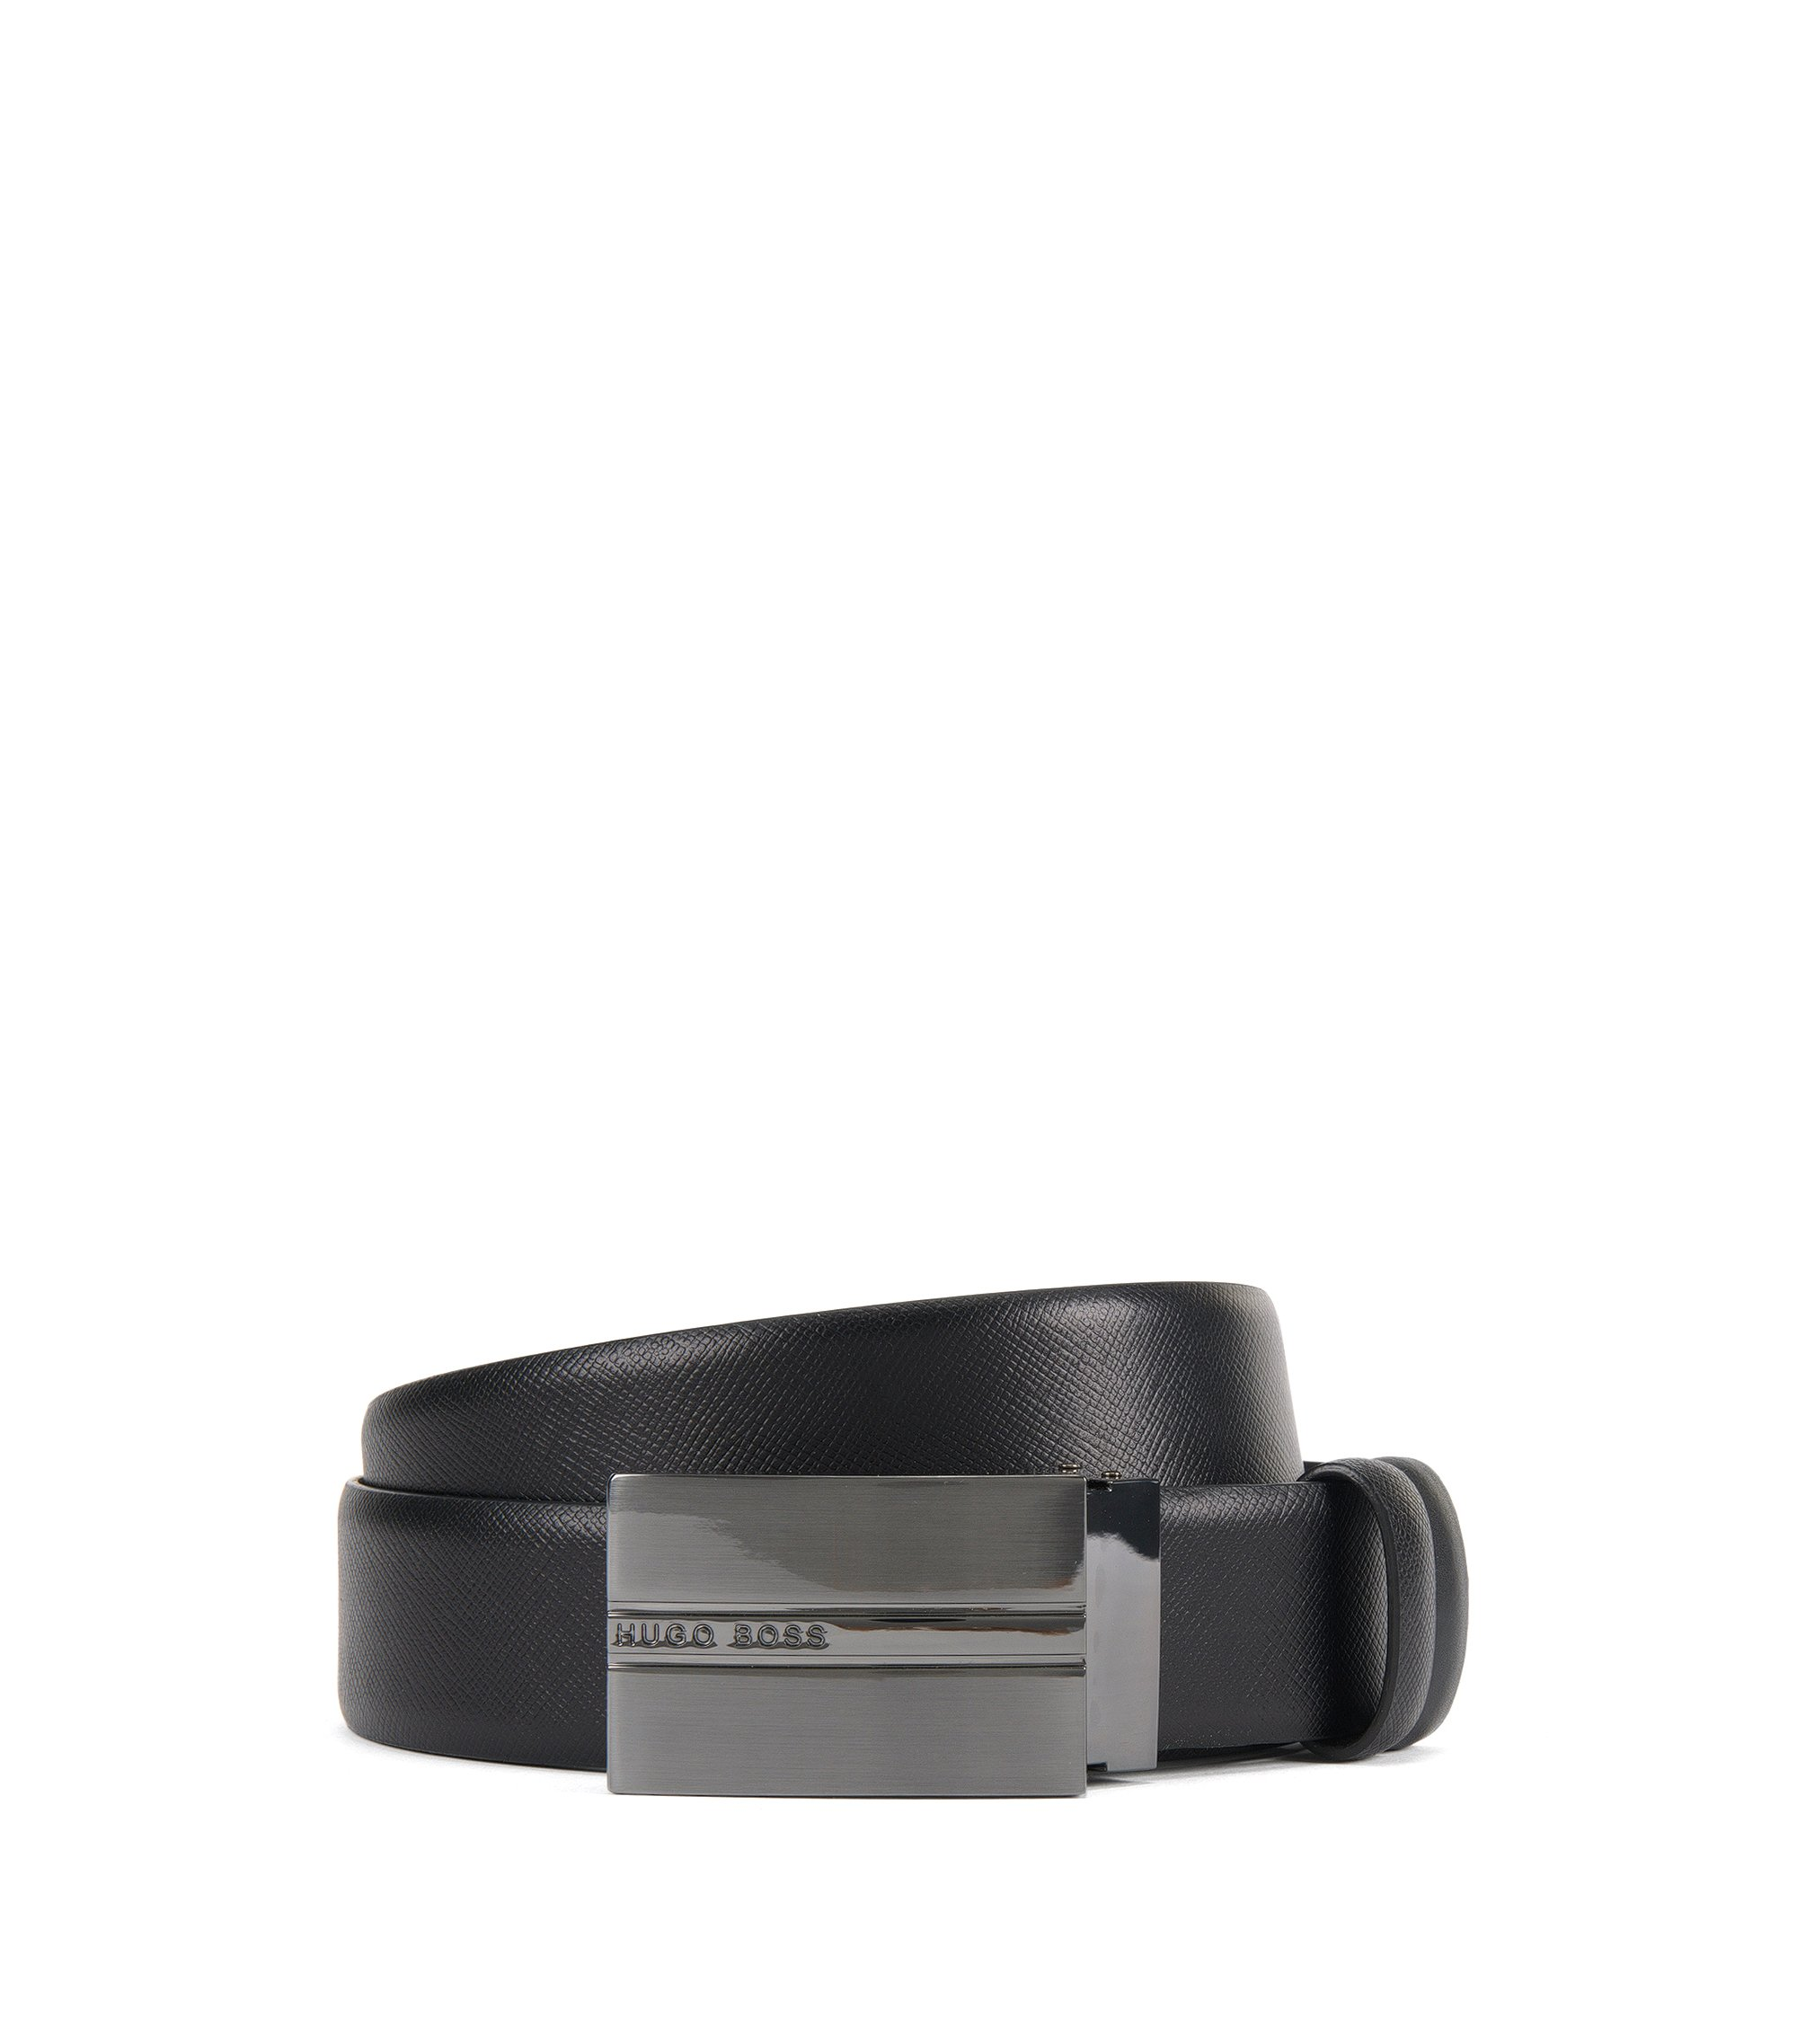 Reversible Leather Belt | Olias Or35 Ps, Black